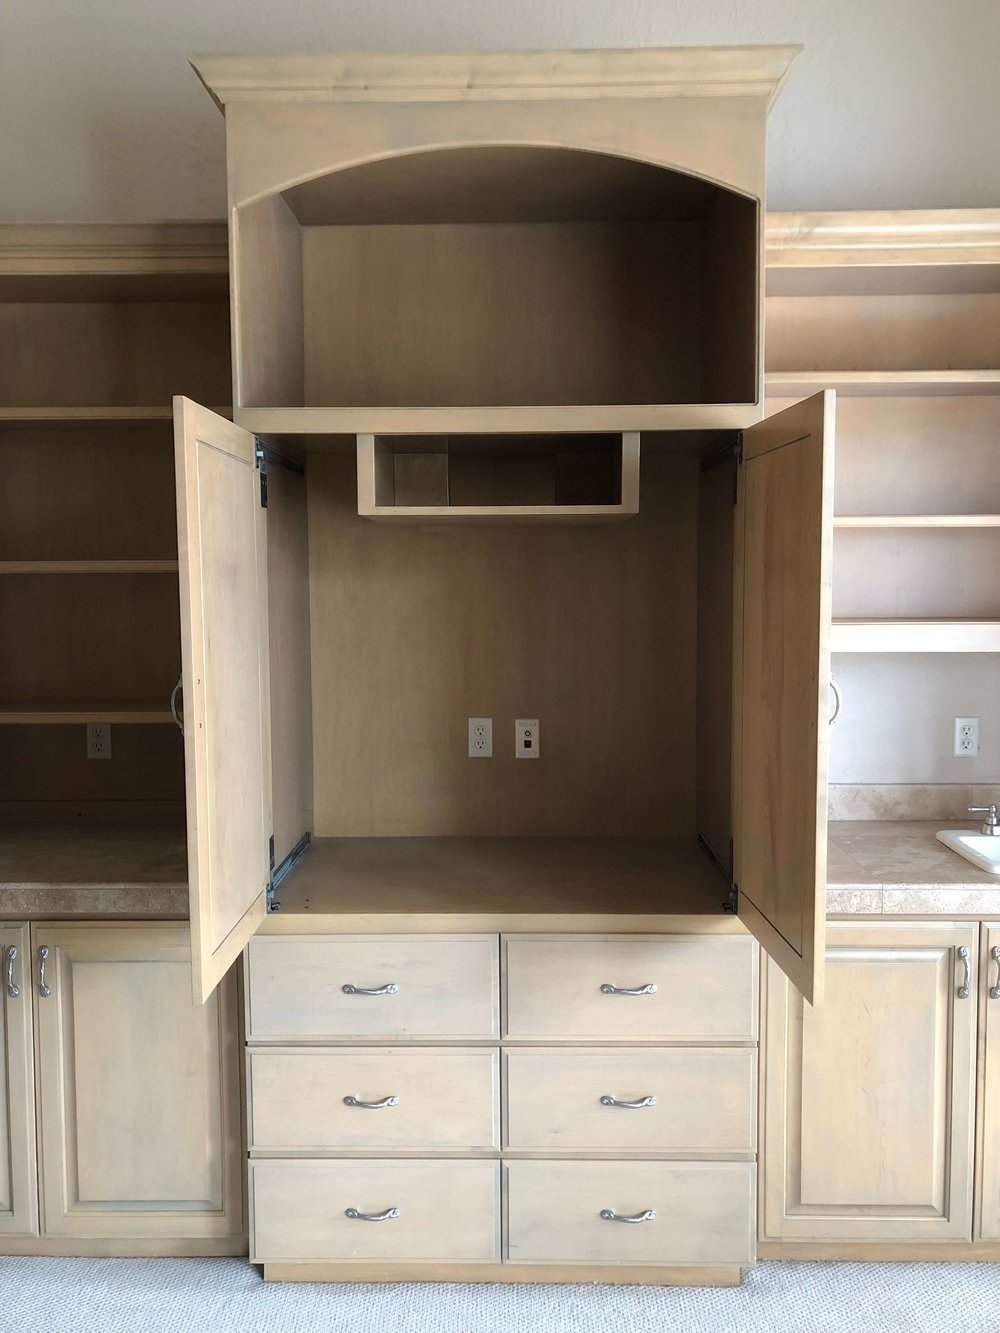 Dated, deep tv built-in will be removed for resale. #stagedtosell #homestaging#sellingahouse #stagingtosell #stagingideas